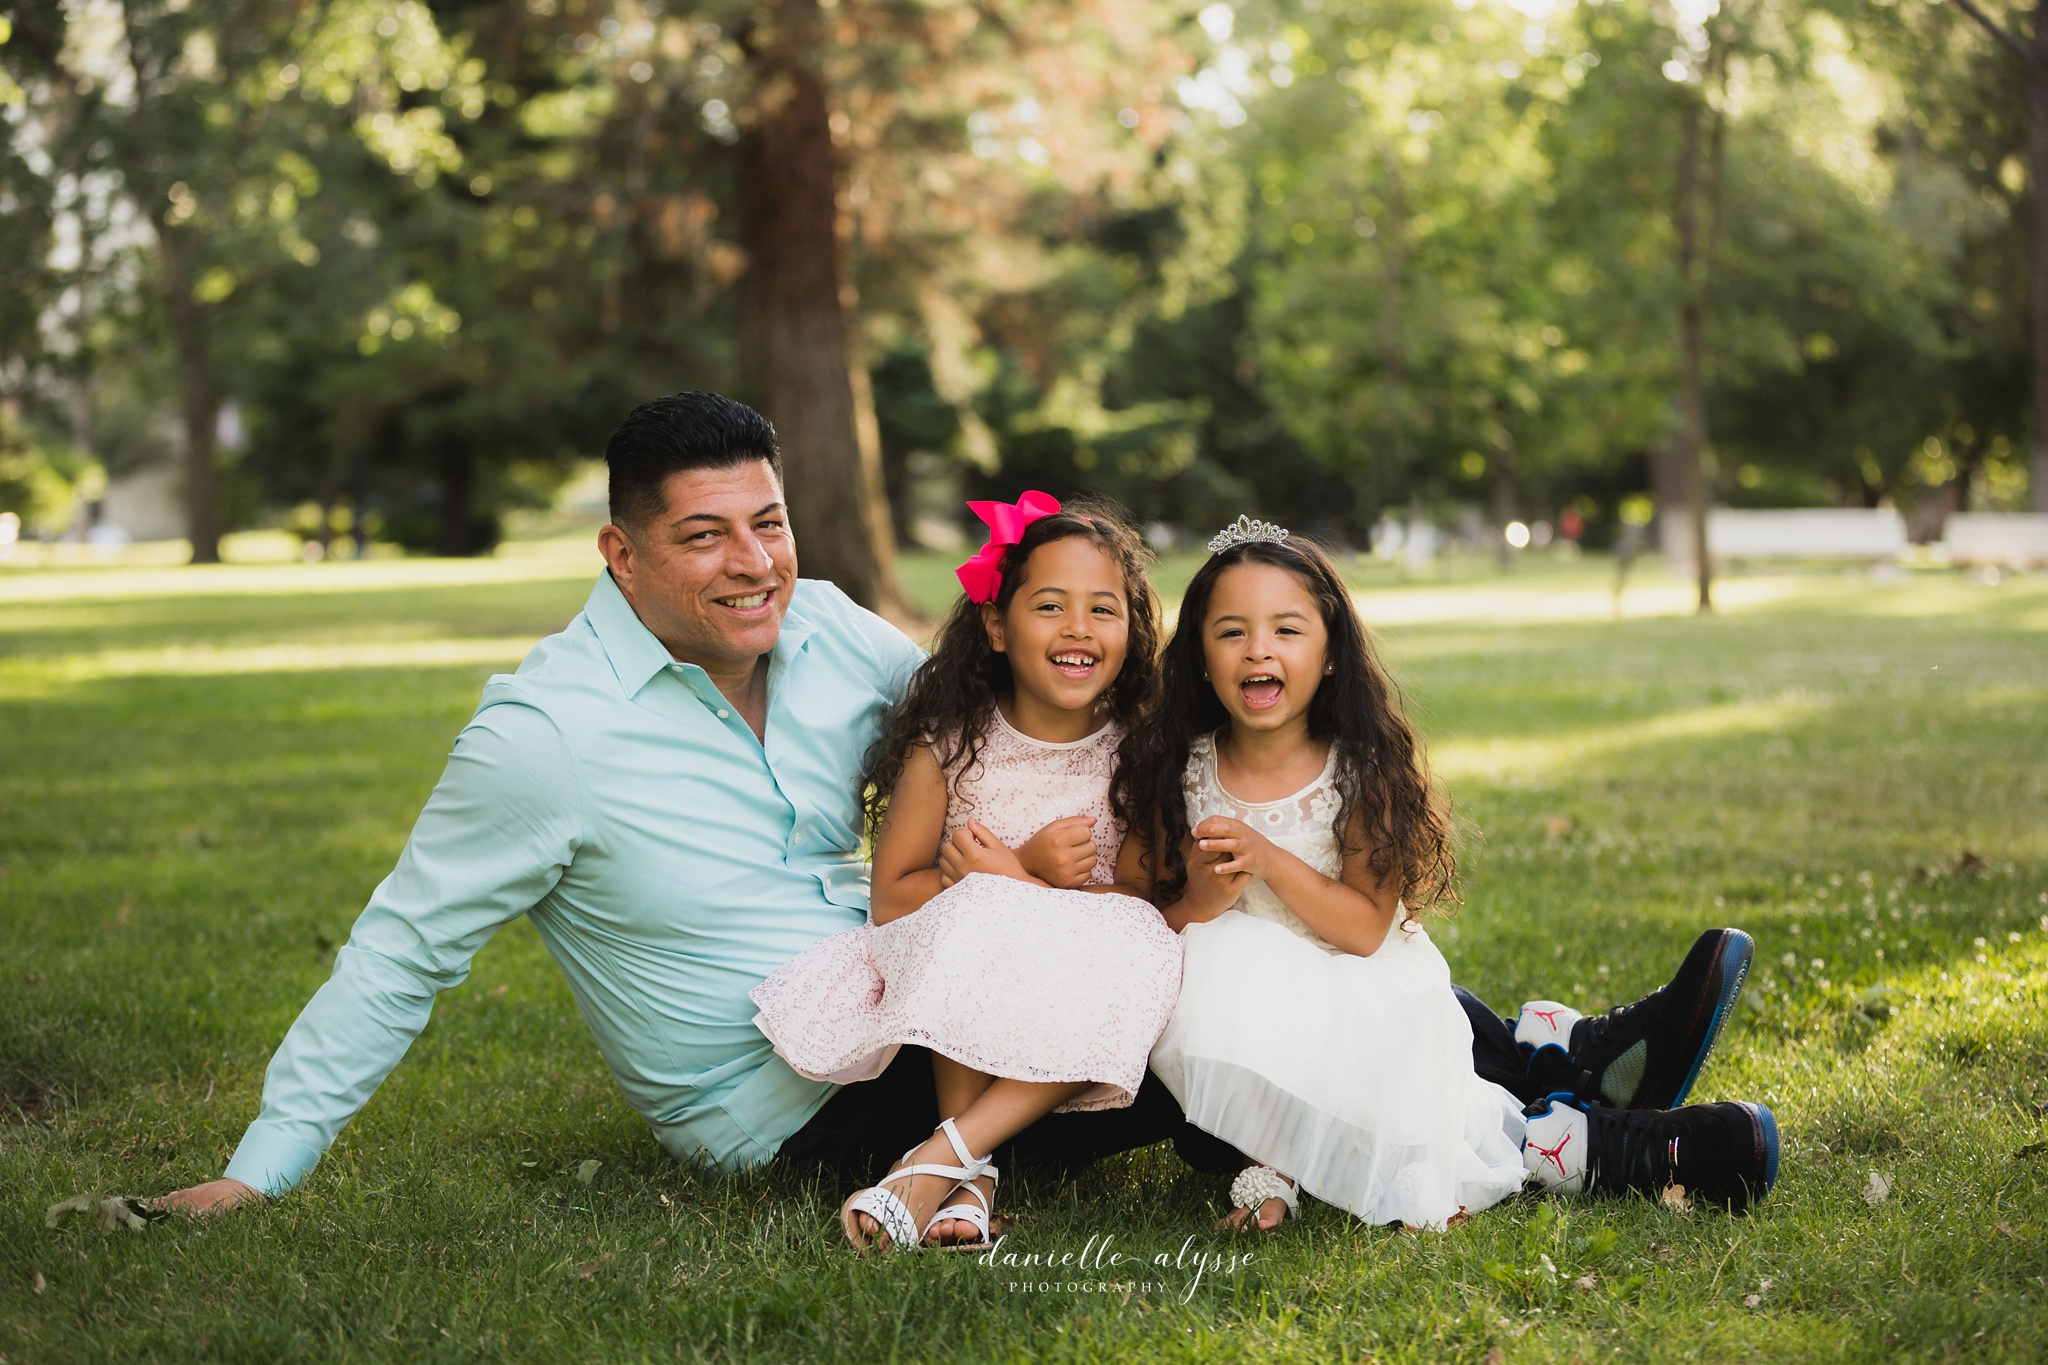 180604_family_portrait_eresvey_state_capitol_park_california_danielle_alysse_photography_blog_35 copy_WEB.jpg